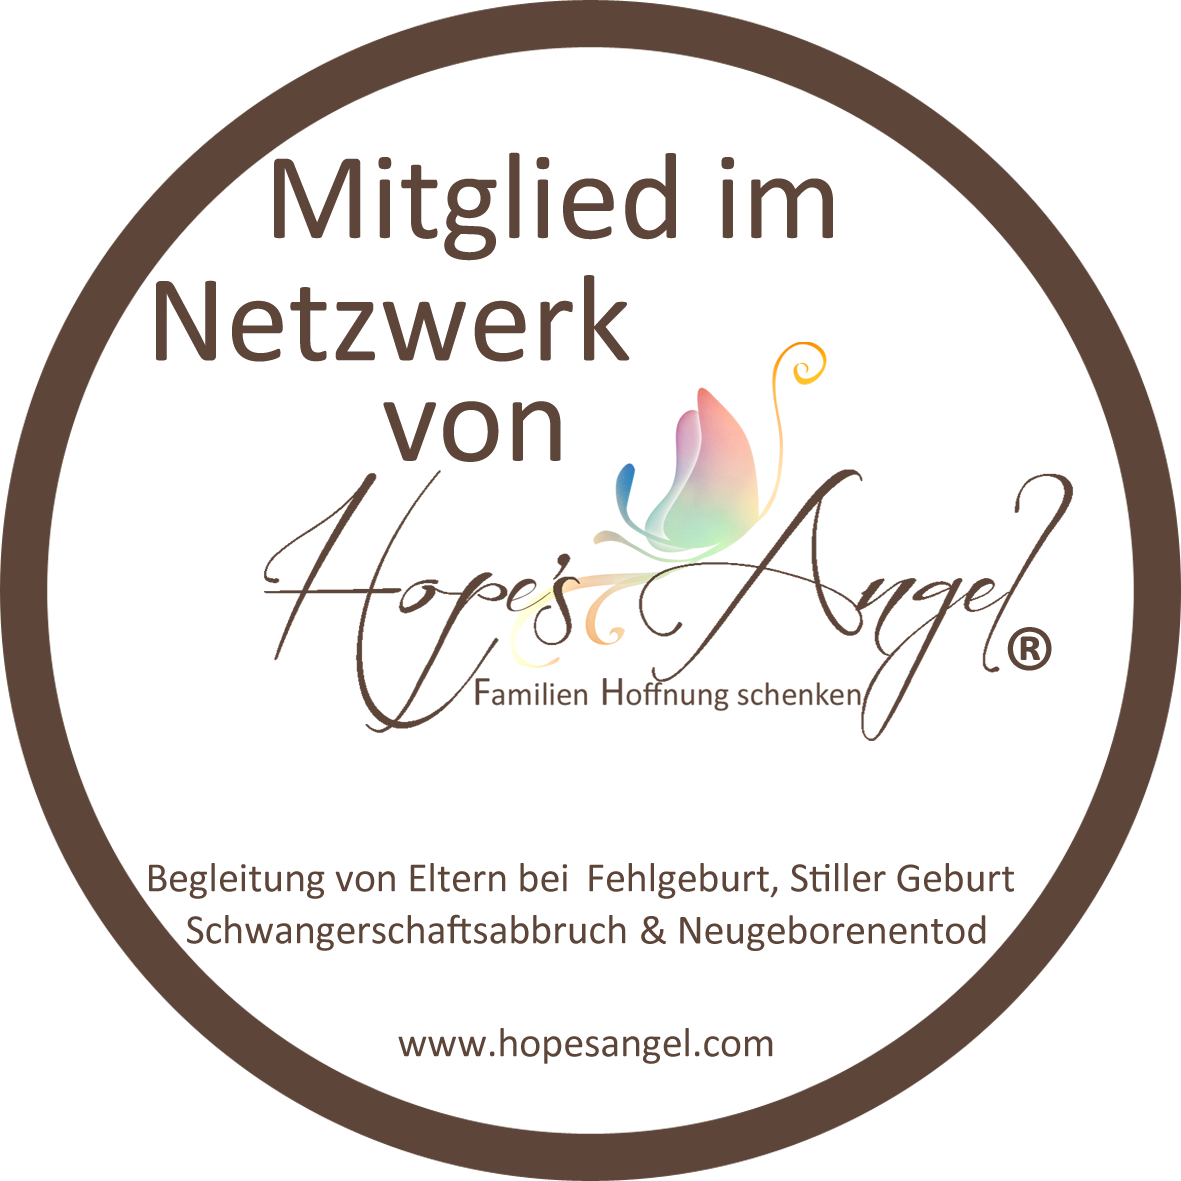 Mitglied bei Hopes Angel